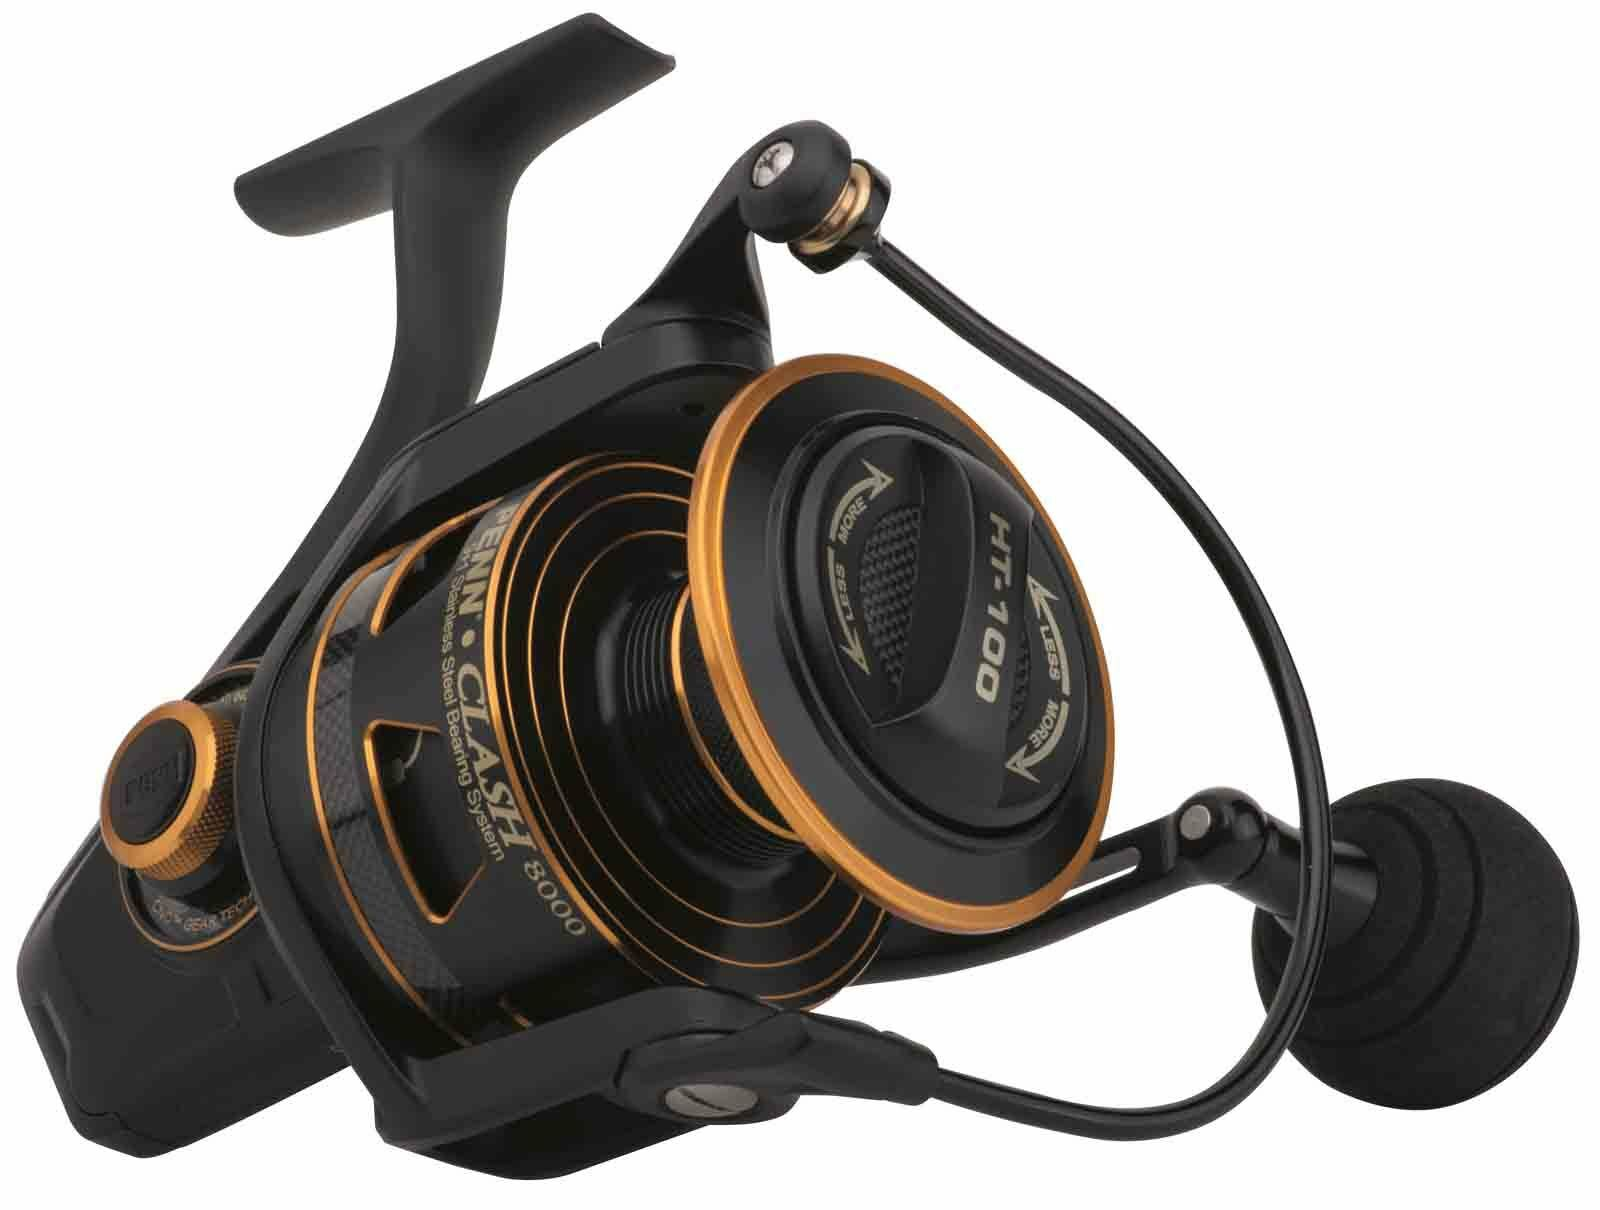 Penn Clash Saltwater Spin  Spinning Sea Fishing Reels - All Models Available  discount sales